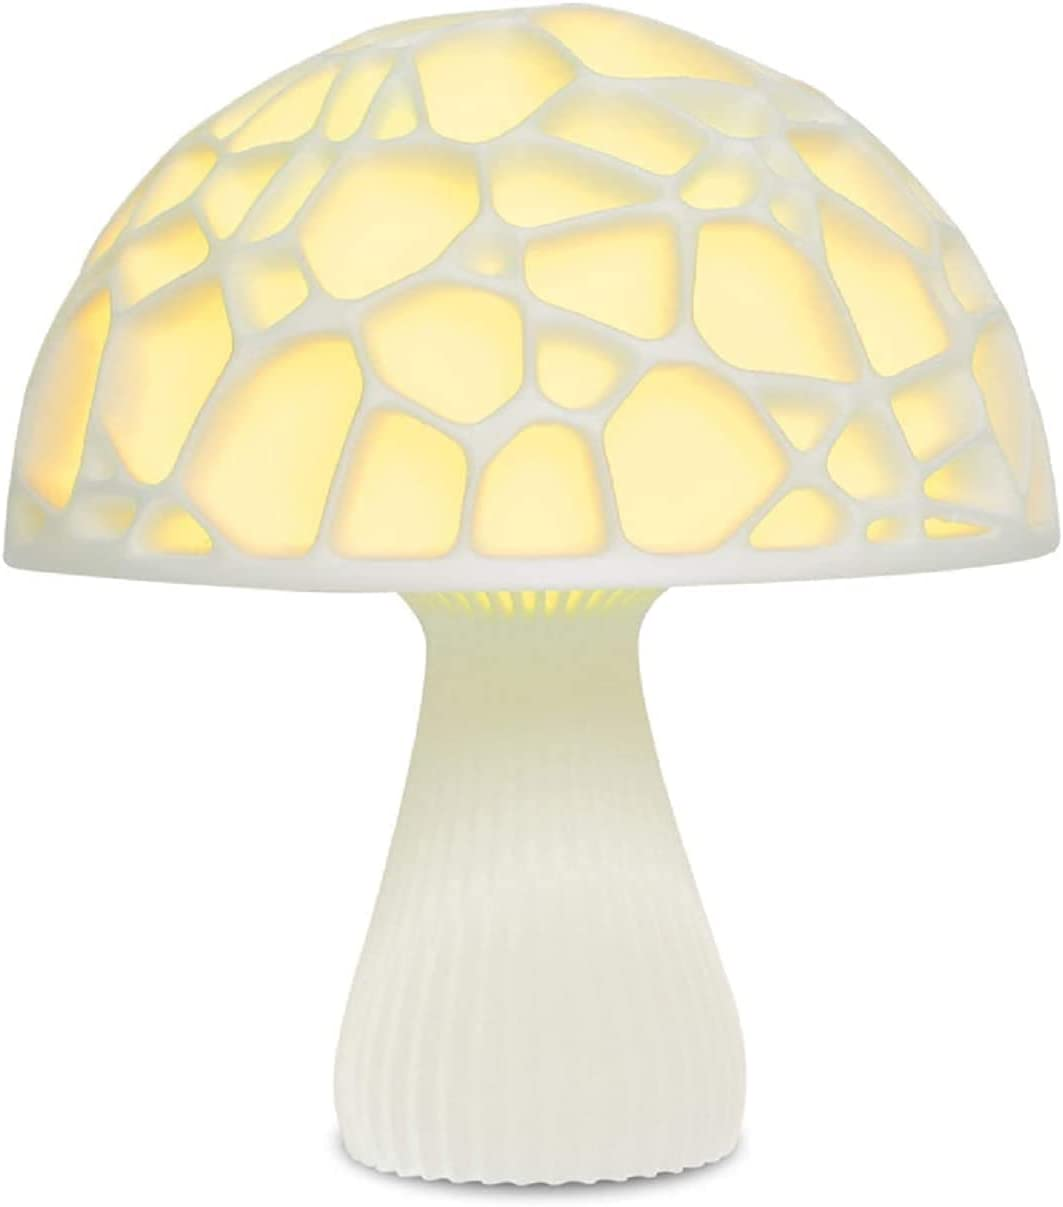 HAITOY Rechargeable NEW before selling LED Night Light with lamp Remote Mushroom Co Directly managed store